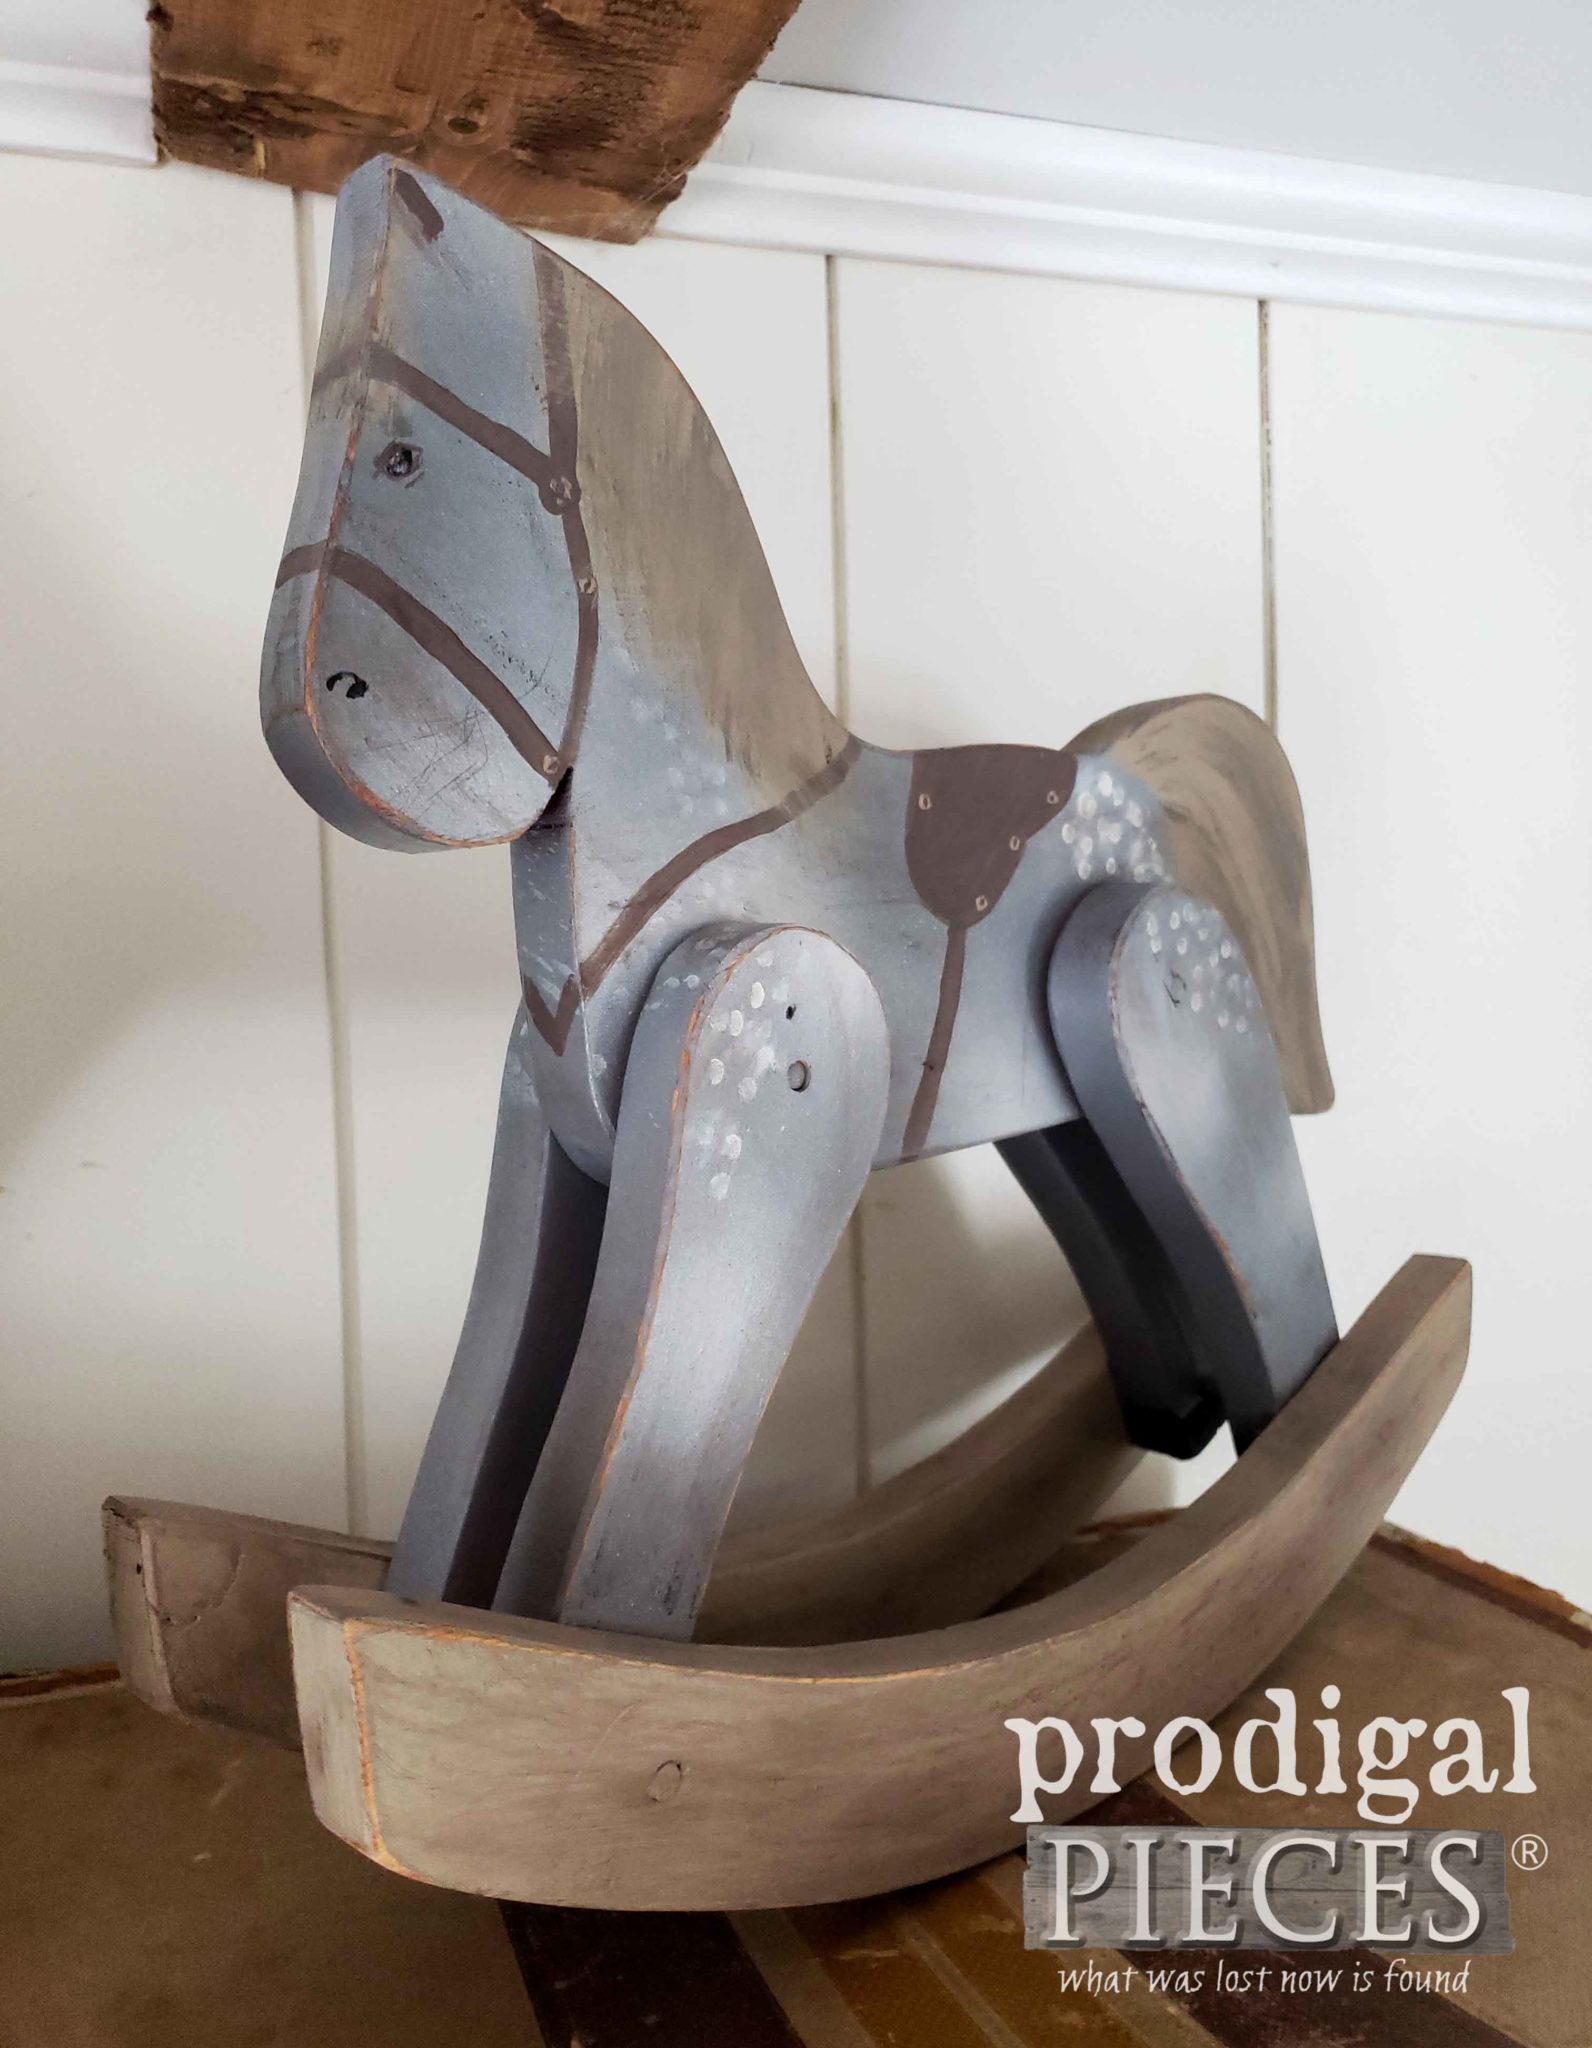 Handmade Dappled Gray Hobby Horse by Larissa of Prodigal Pieces | prodigalpieces.com #prodigalpieces #handmade #farmhouse #shopping